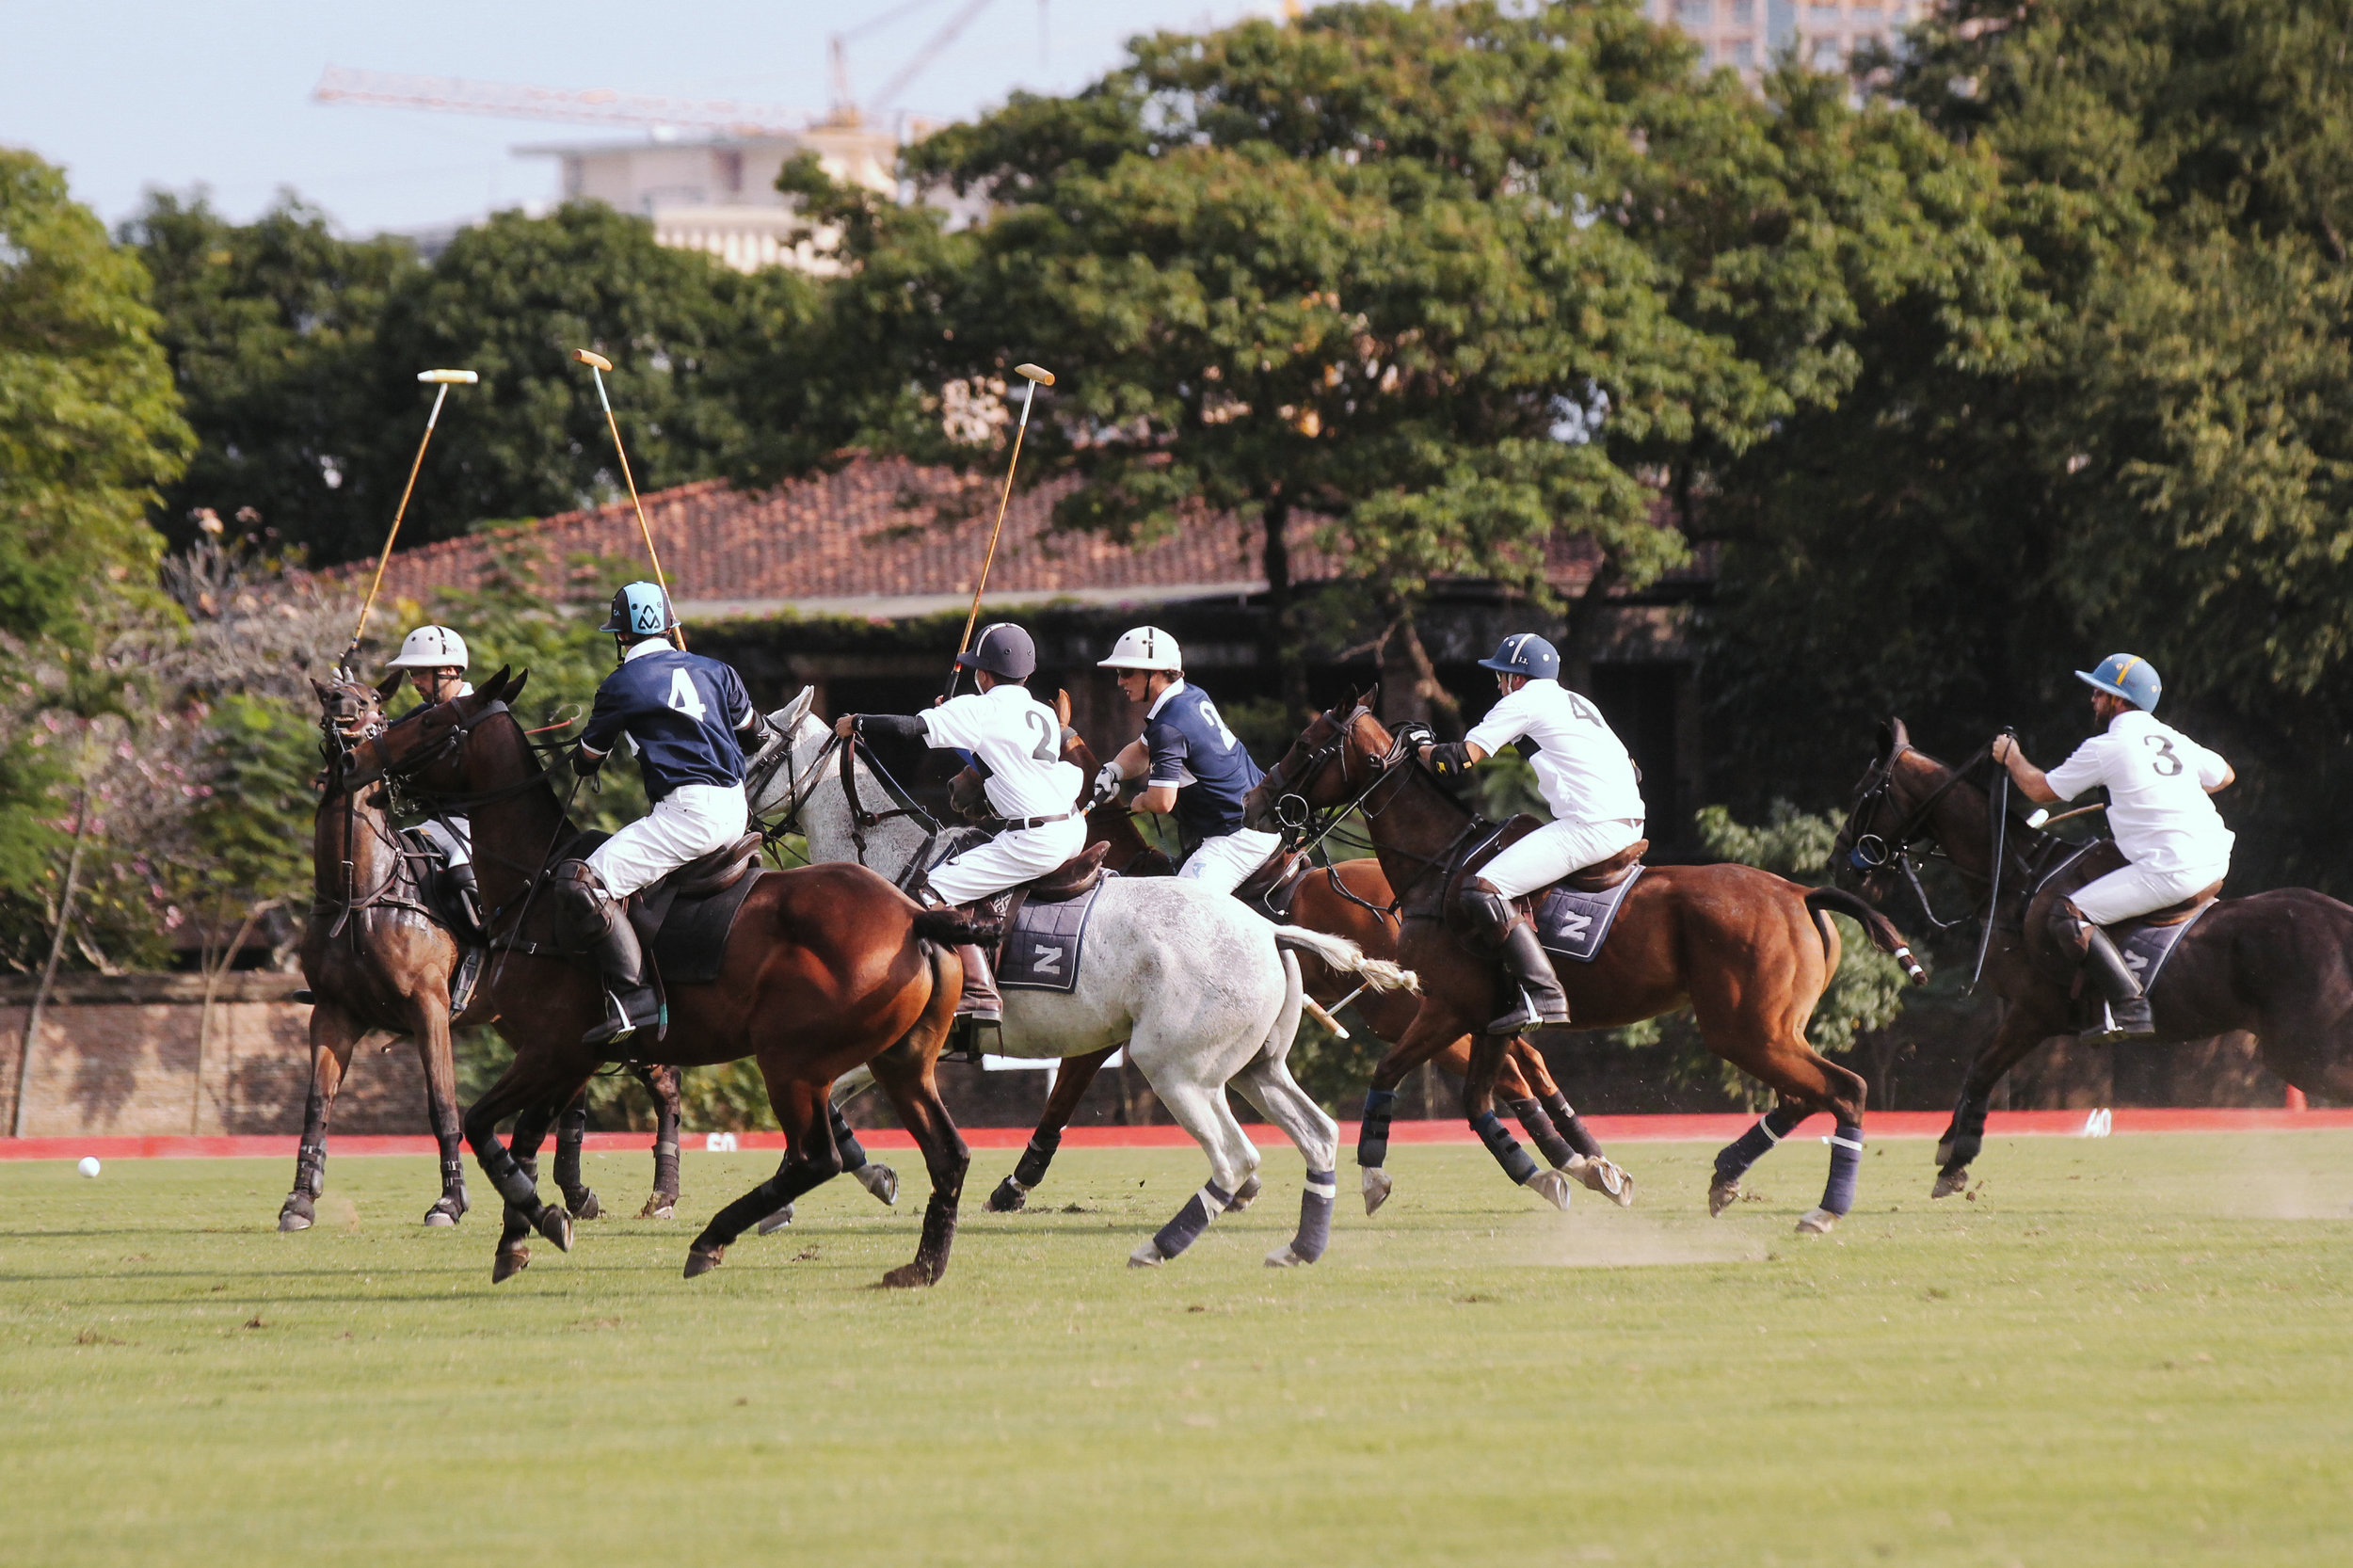 FILA Polo Cup 2017_High Goal-1.jpg